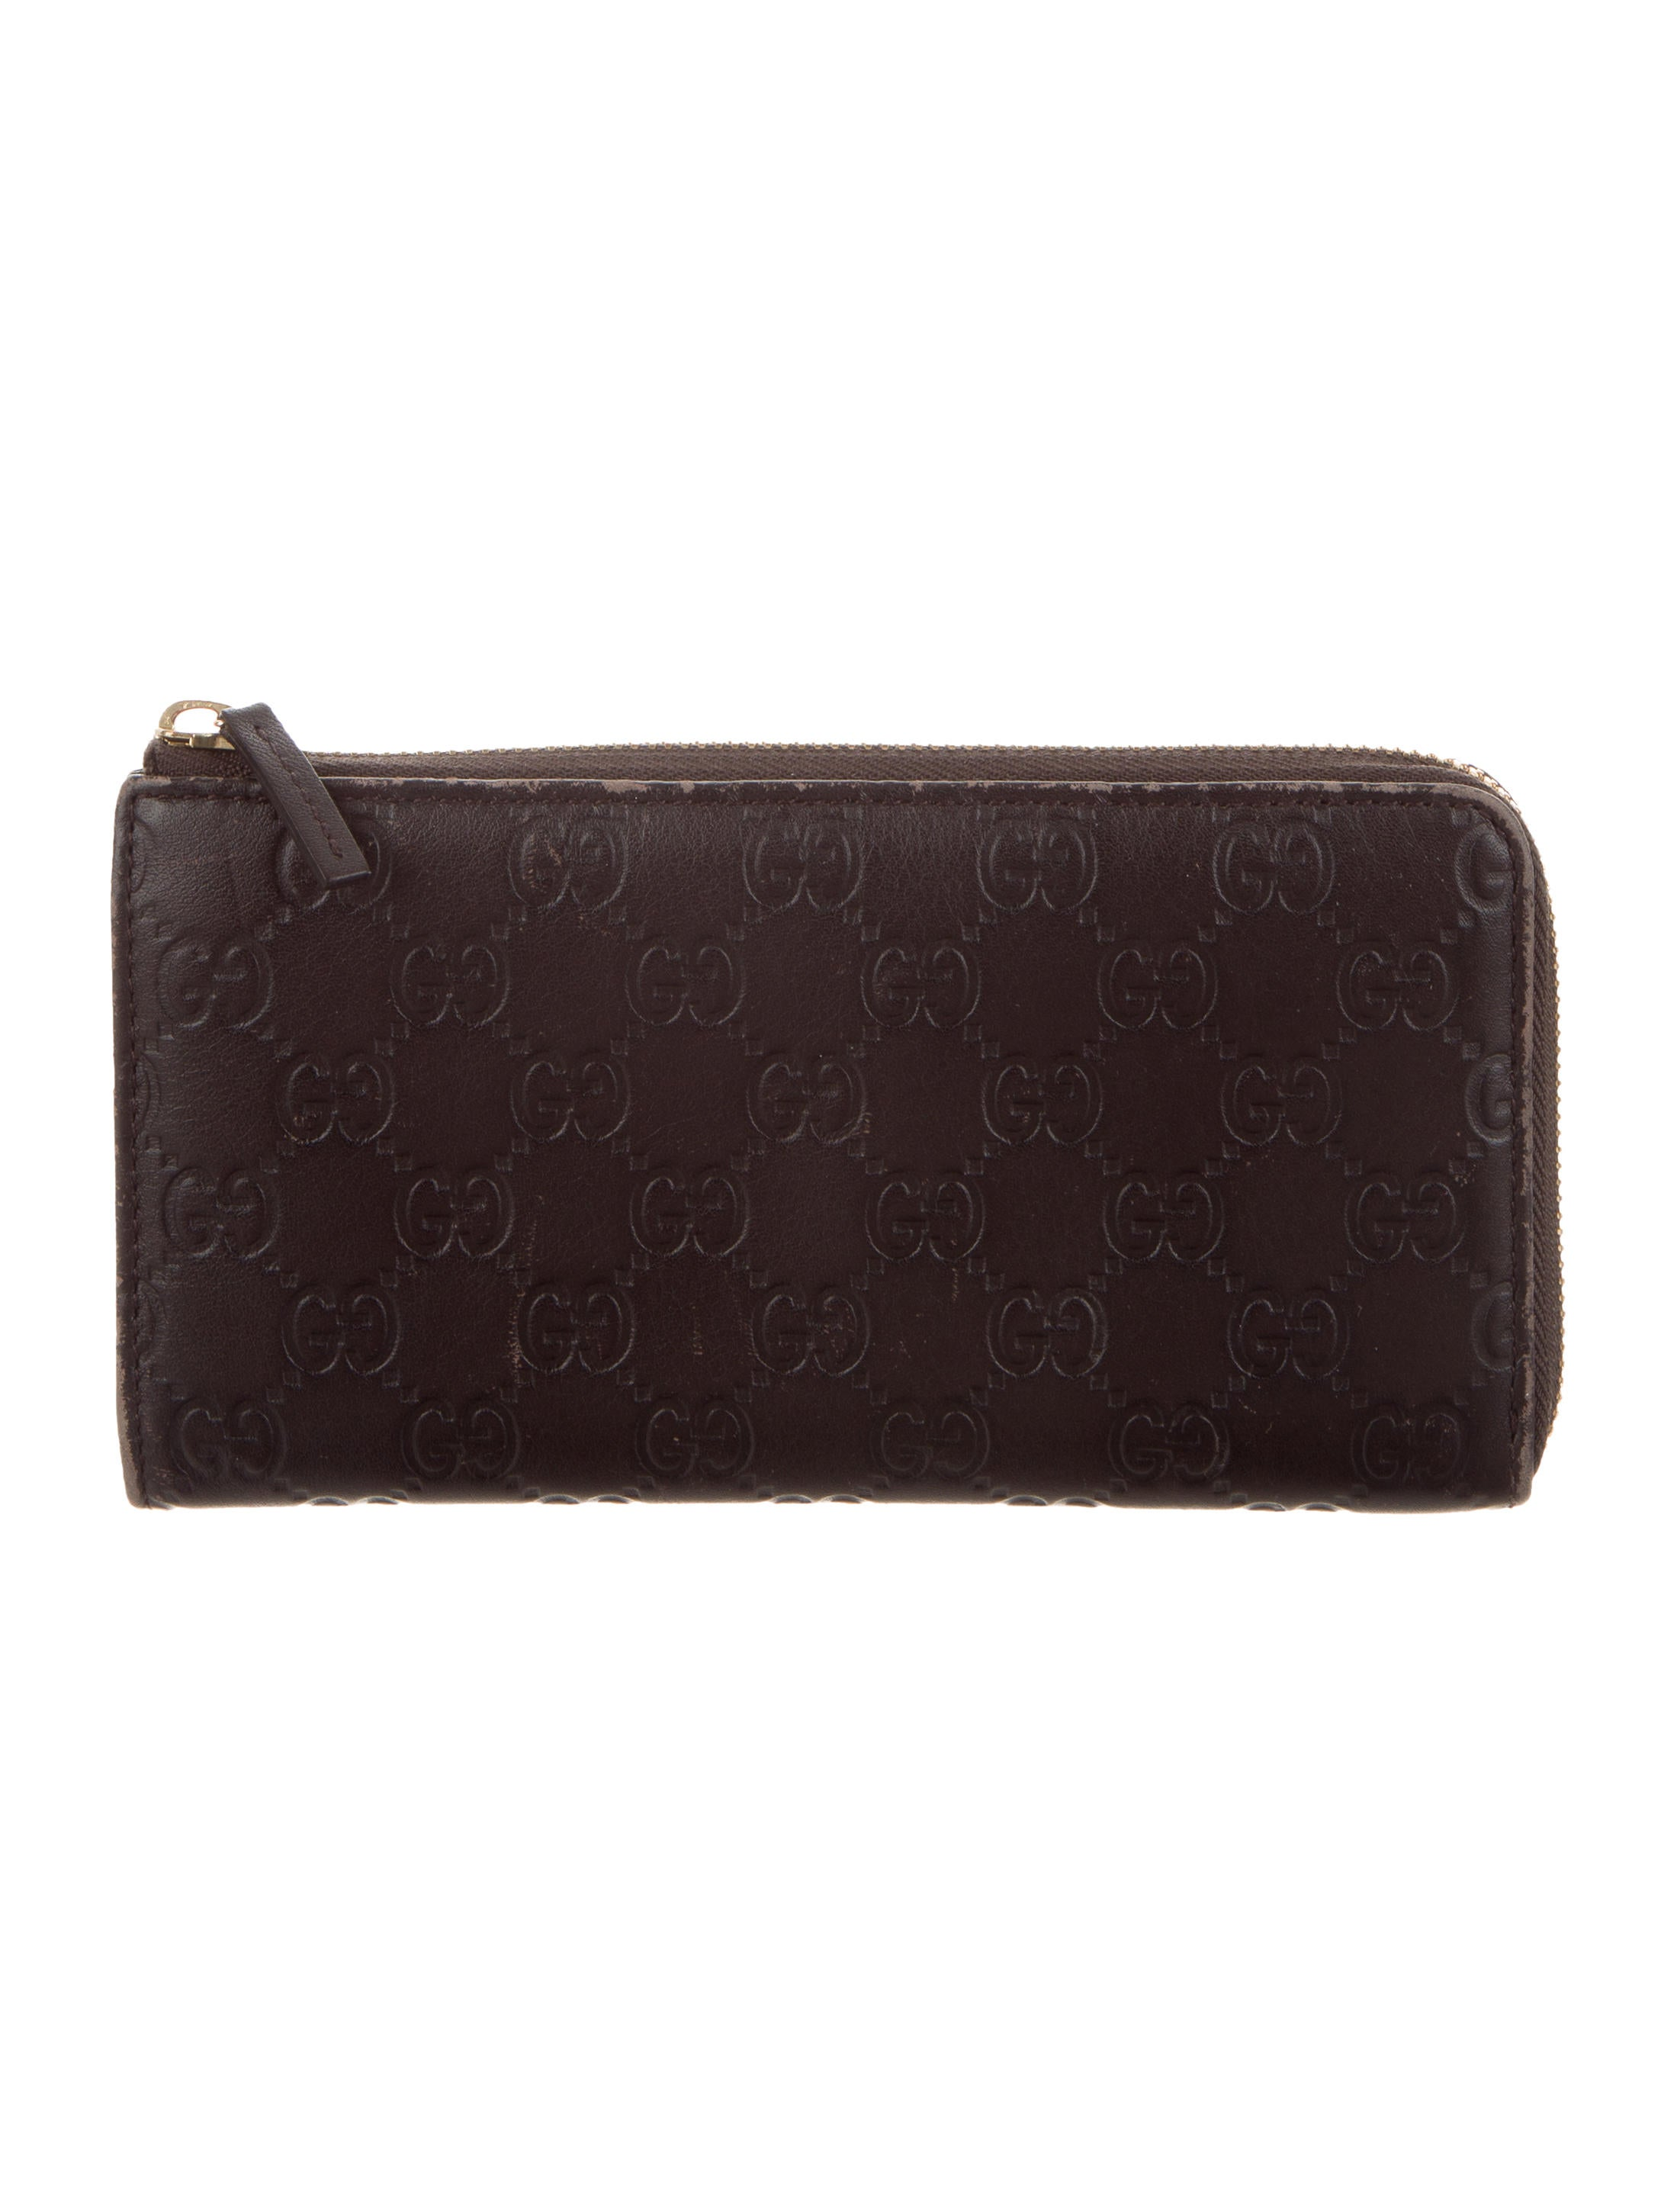 b4ba5e7e9a3e Gucci Wallets | The RealReal